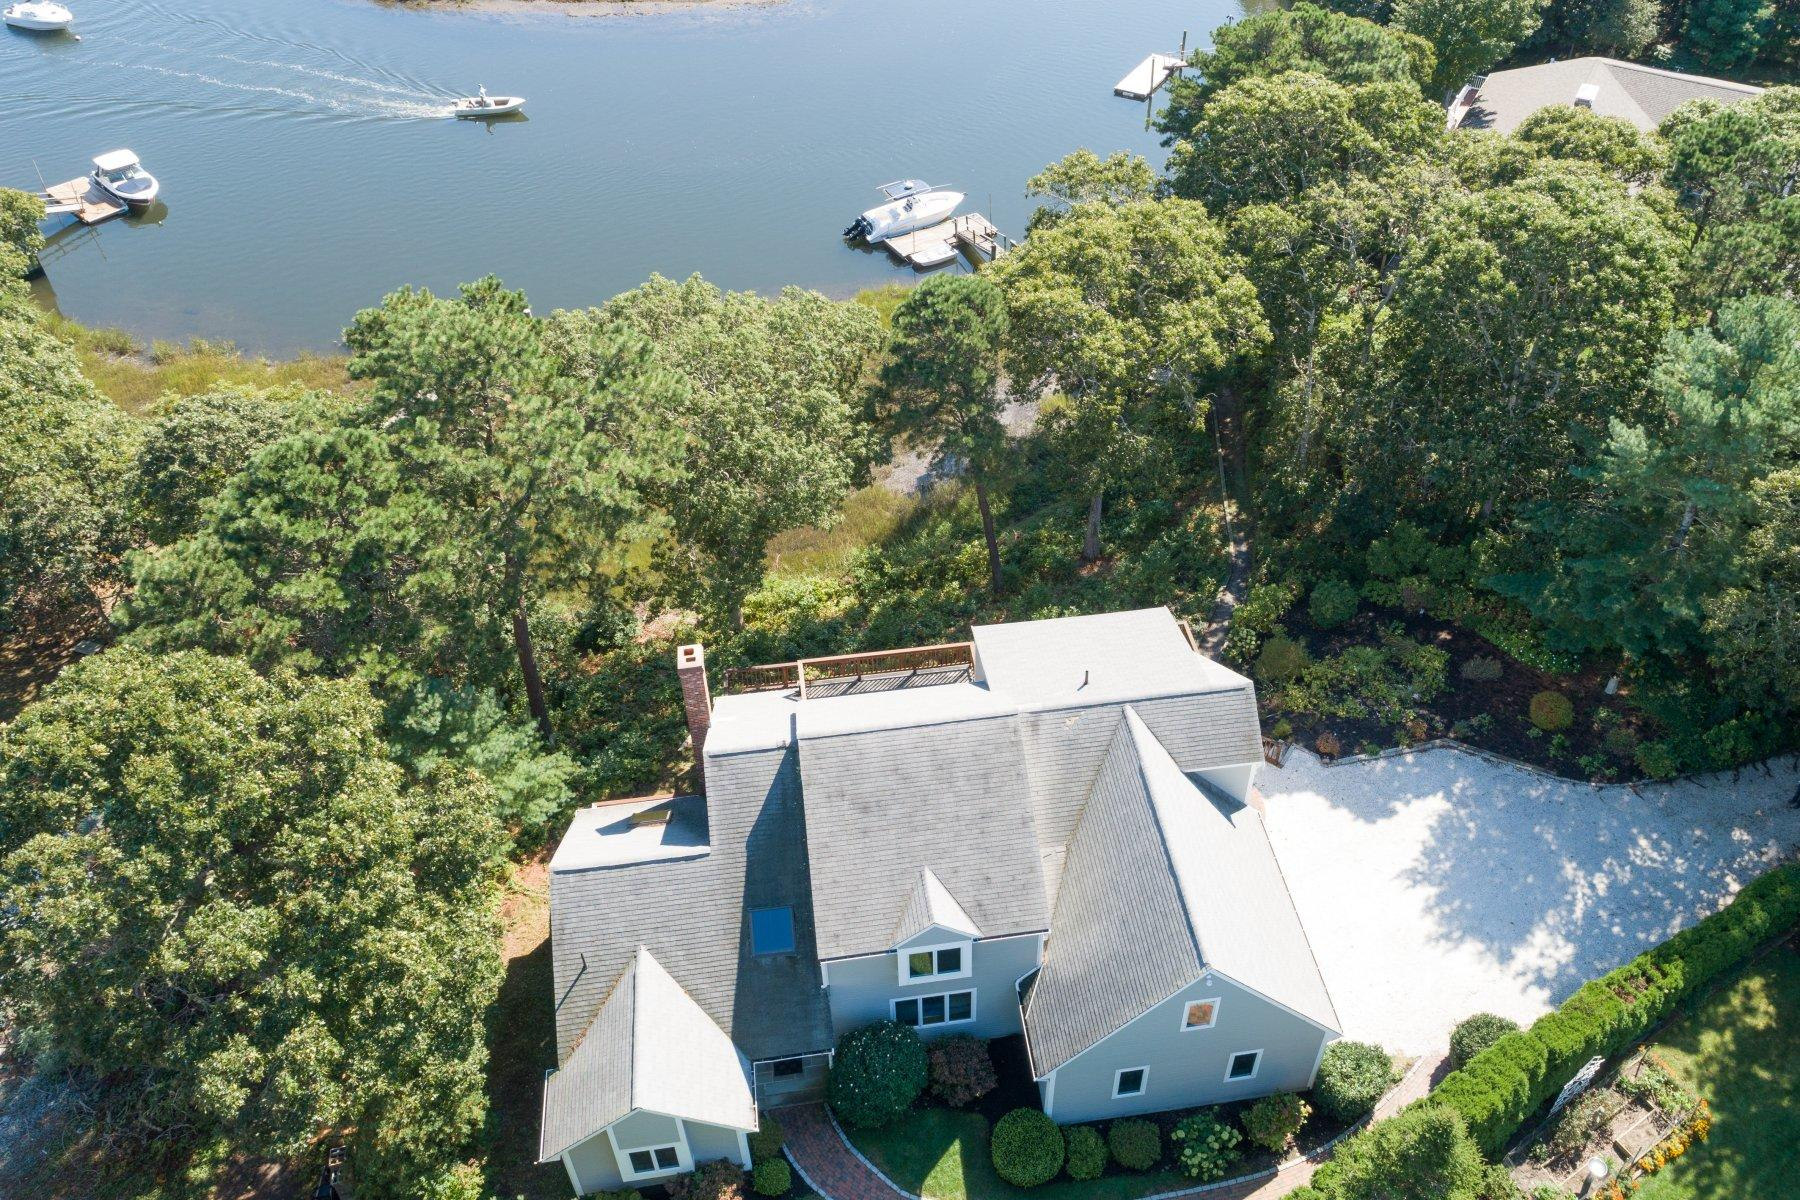 4 Salt River Lane, West Harwich MA, 02671